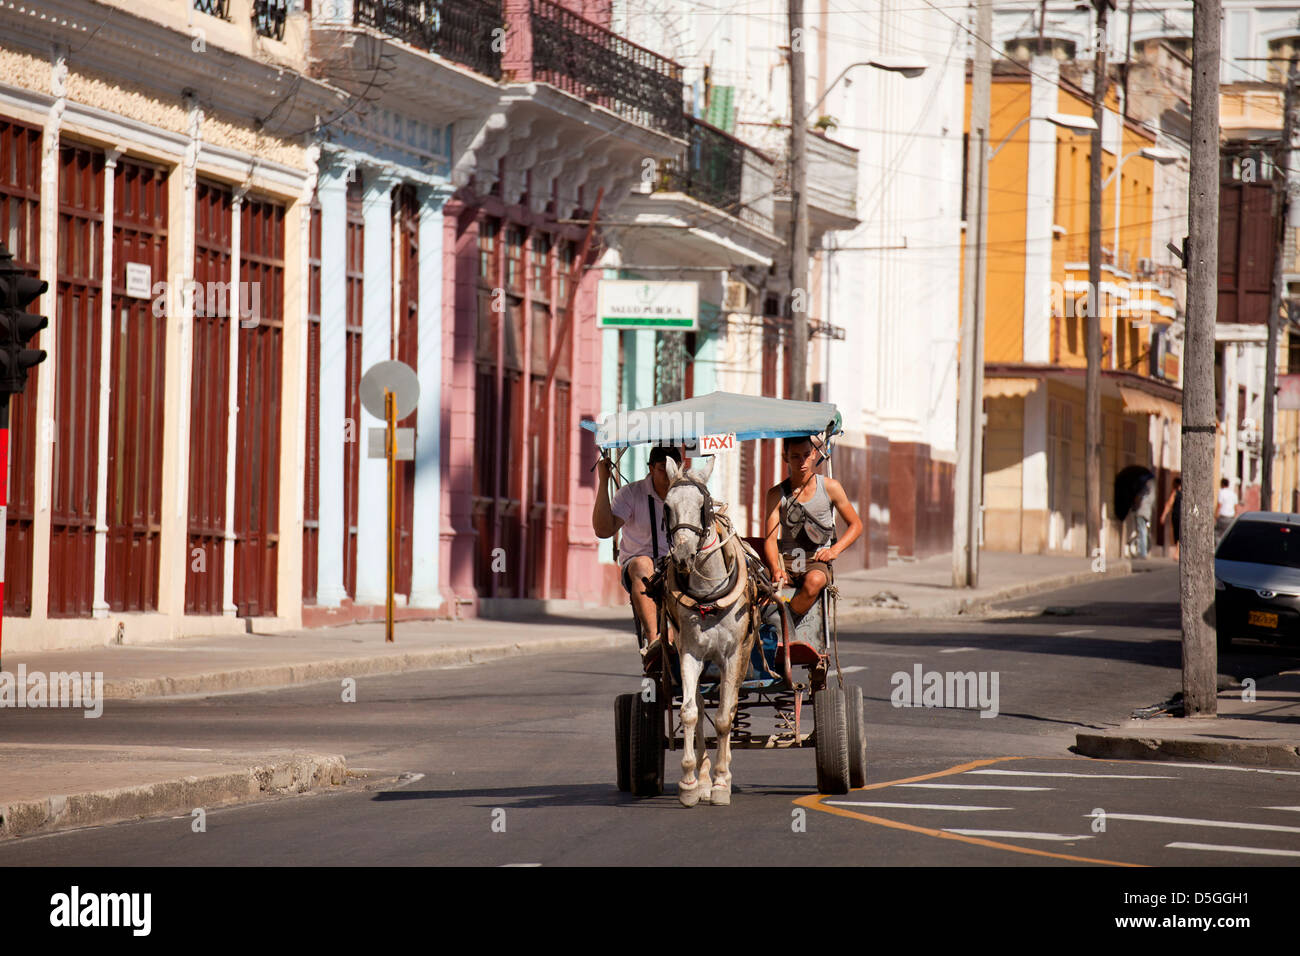 typical street and horse cart taxi in Cienfuegos, Cuba, Caribbean - Stock Image